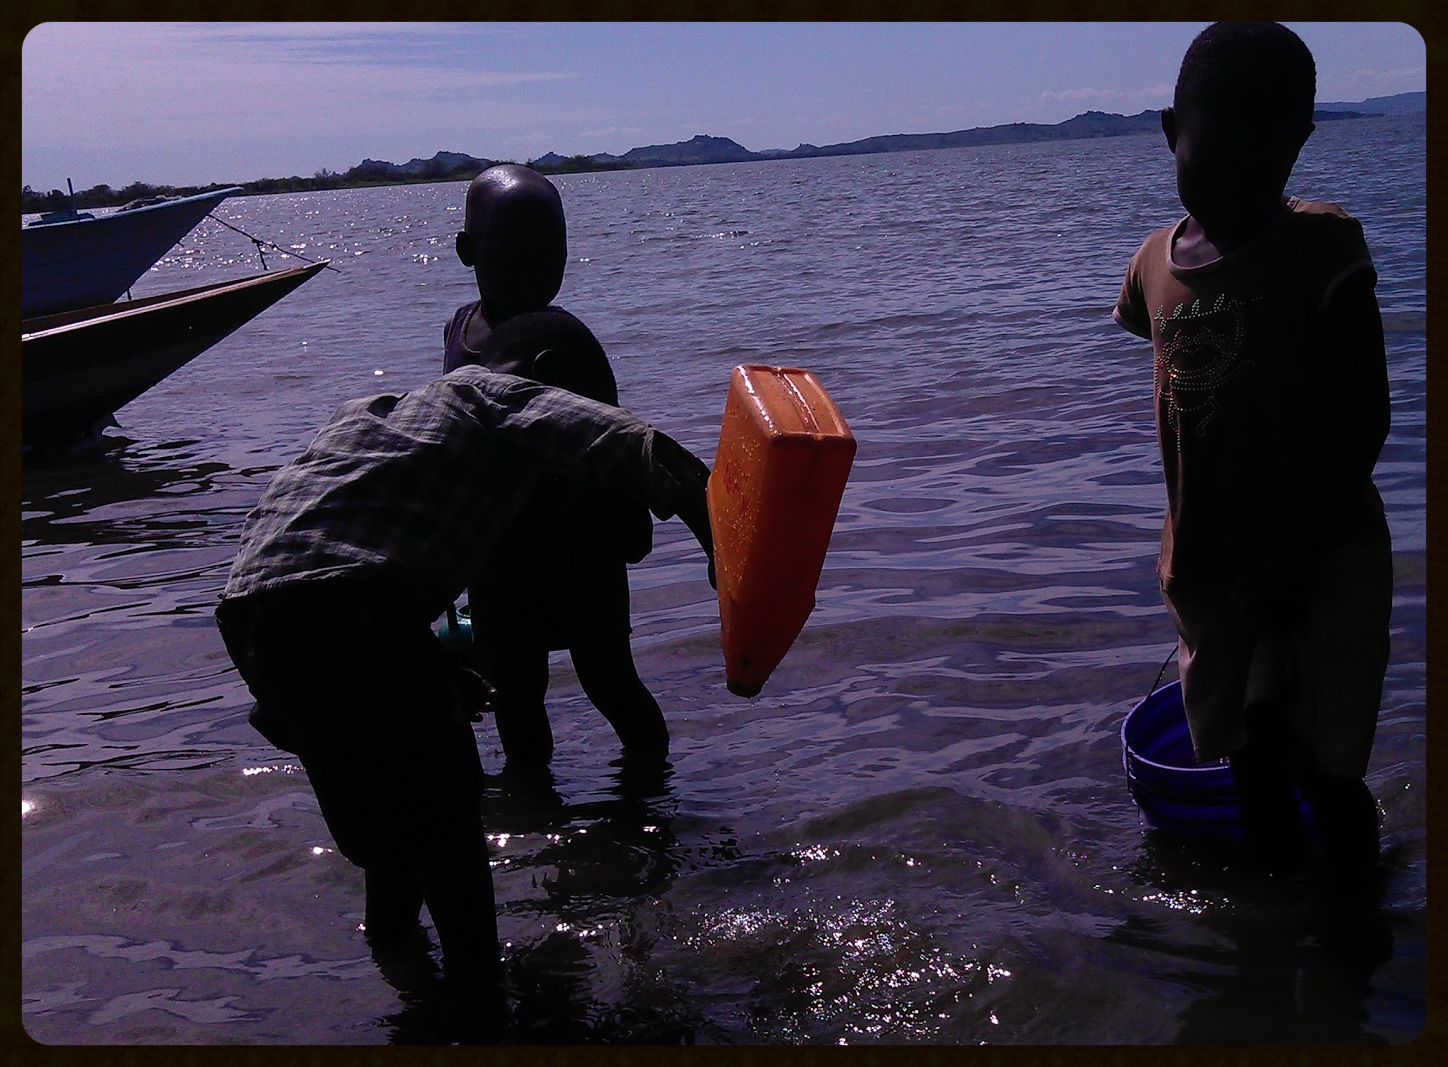 Children collecting water from Lake Victoria. An ideal schistosomiasis transmission site.